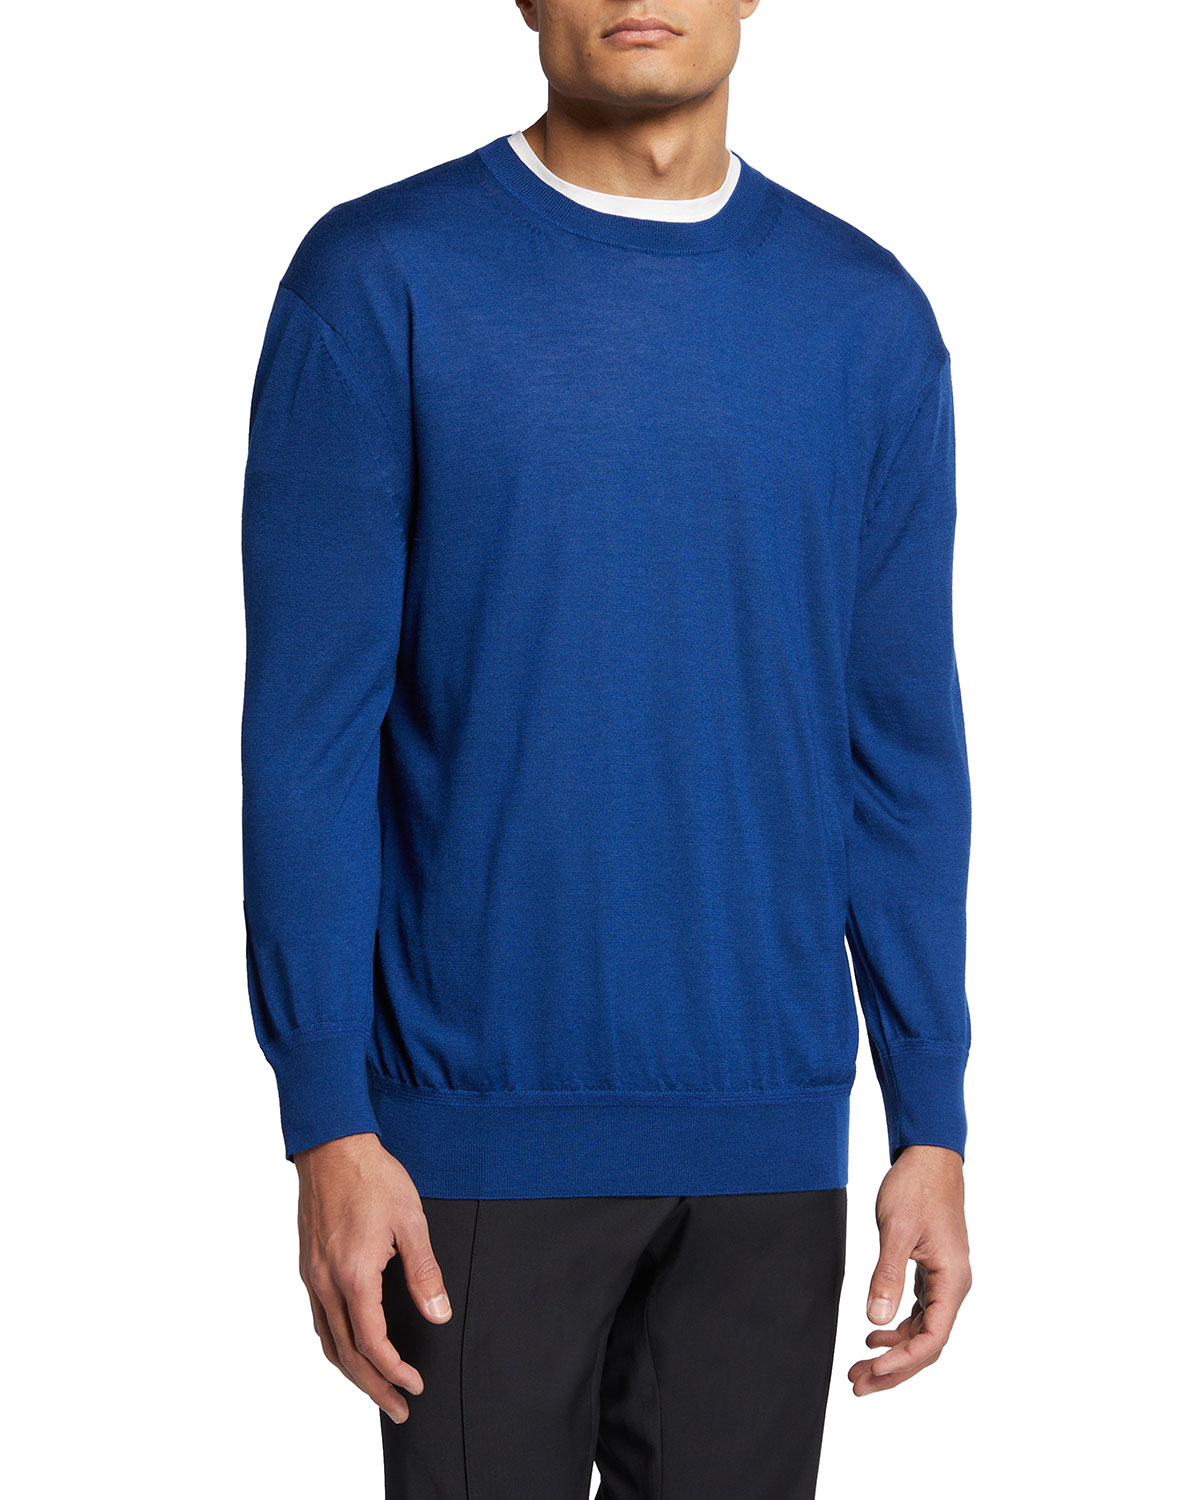 Tom Ford MEN'S SOLID JERSEY LONG-SLEEVE CREWNECK SWEATER